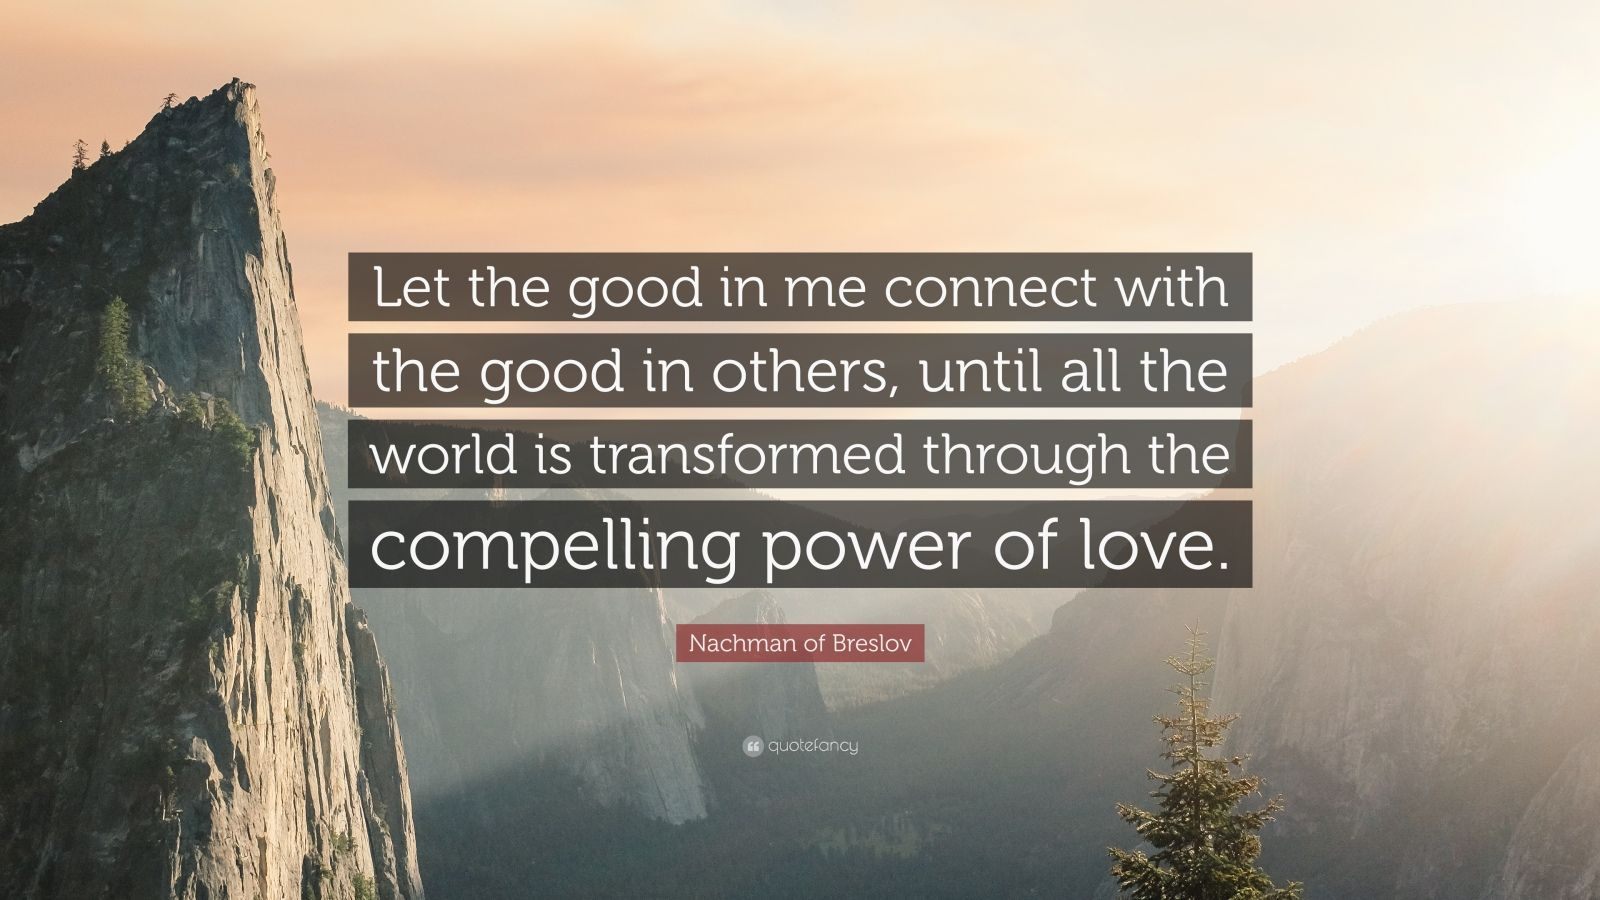 """Nachman of Breslov Quote: """"Let the good in me connect with the good in others, until all the world is transformed through the compelling power of love."""""""